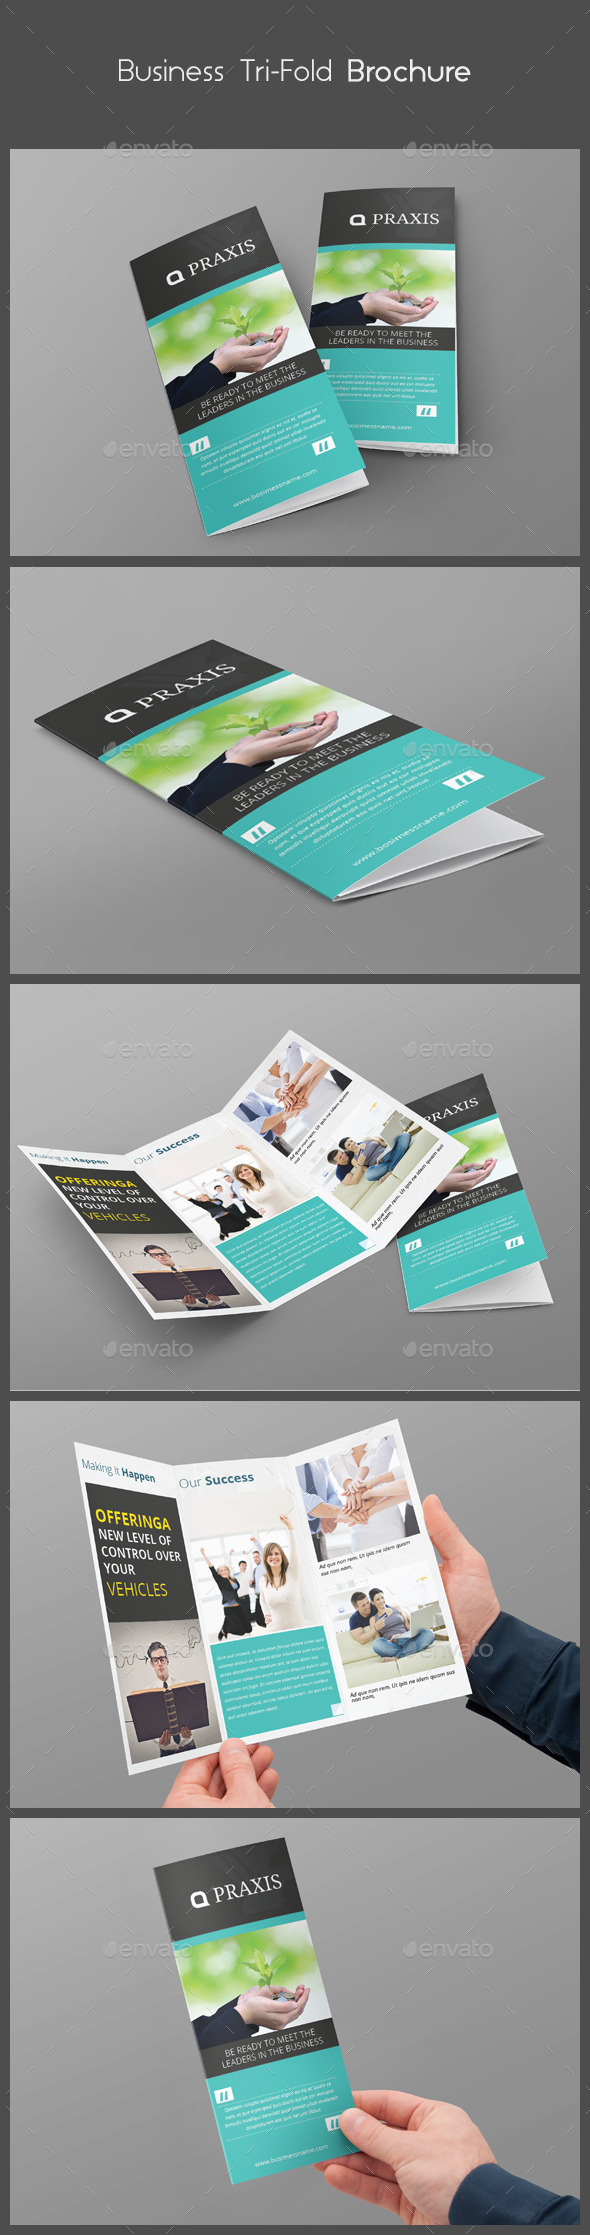 Business Tri-Fold Brochure - Brochures Print Templates